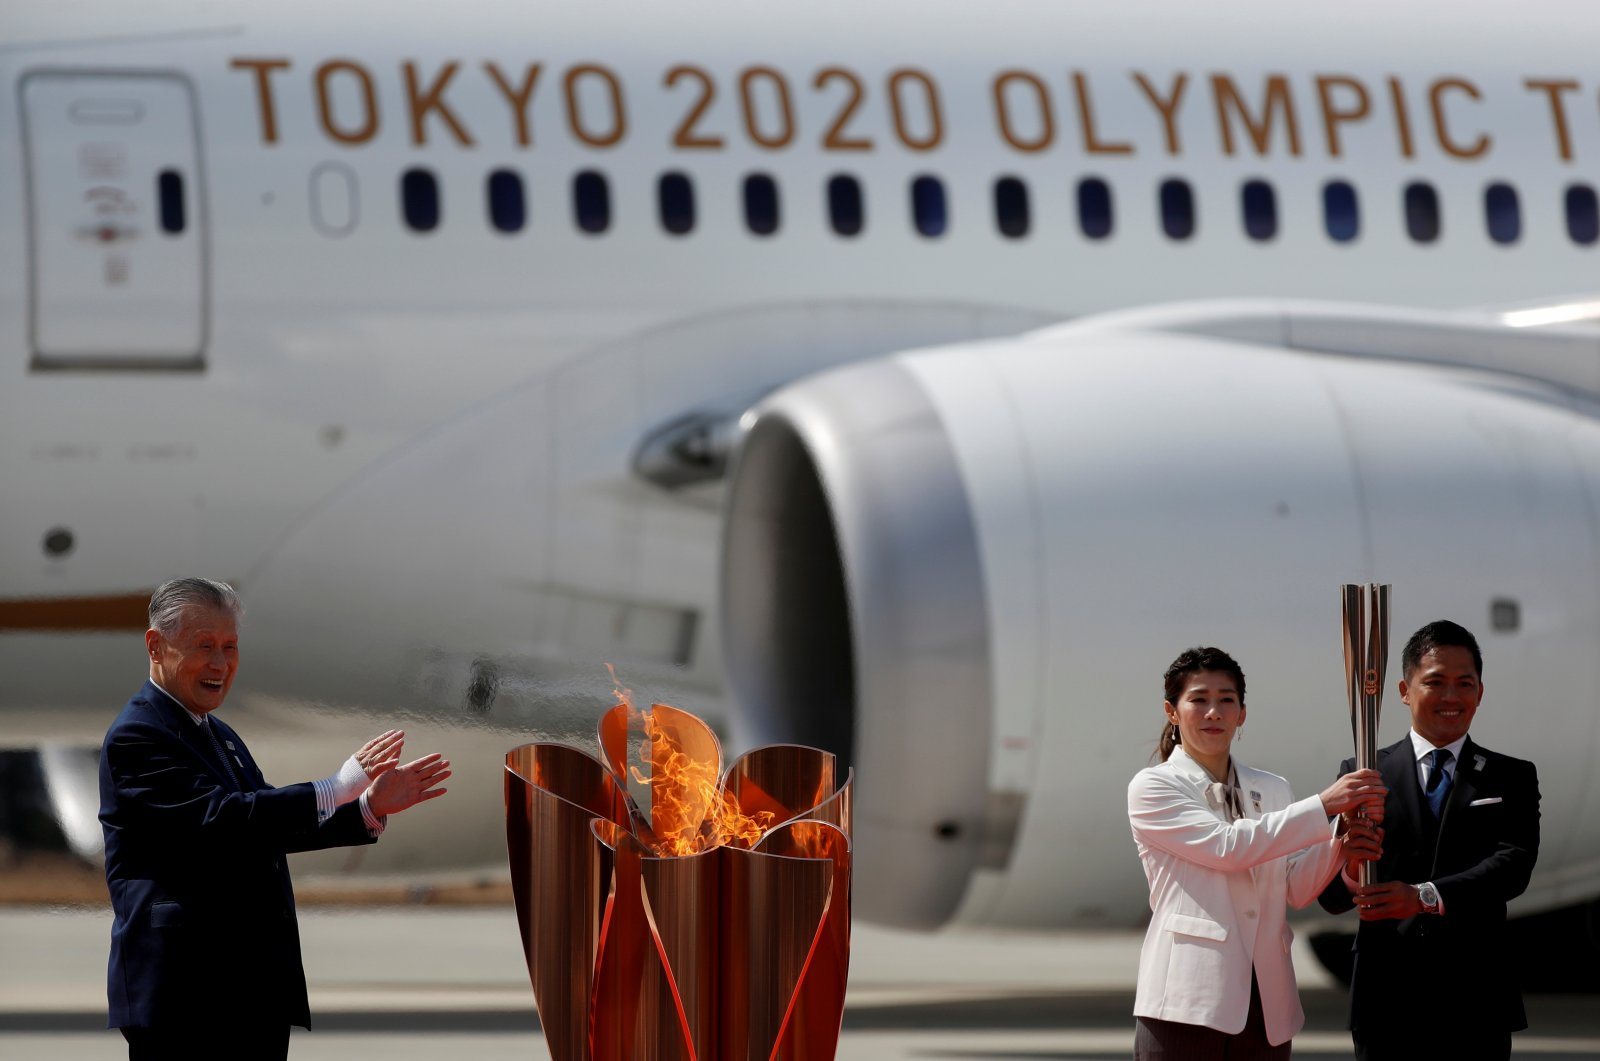 Olympic flame arrives in Japan ahead of Tokyo 2020 Games, Higashimatsushima, March 20, 2020. (Reuters Photo)